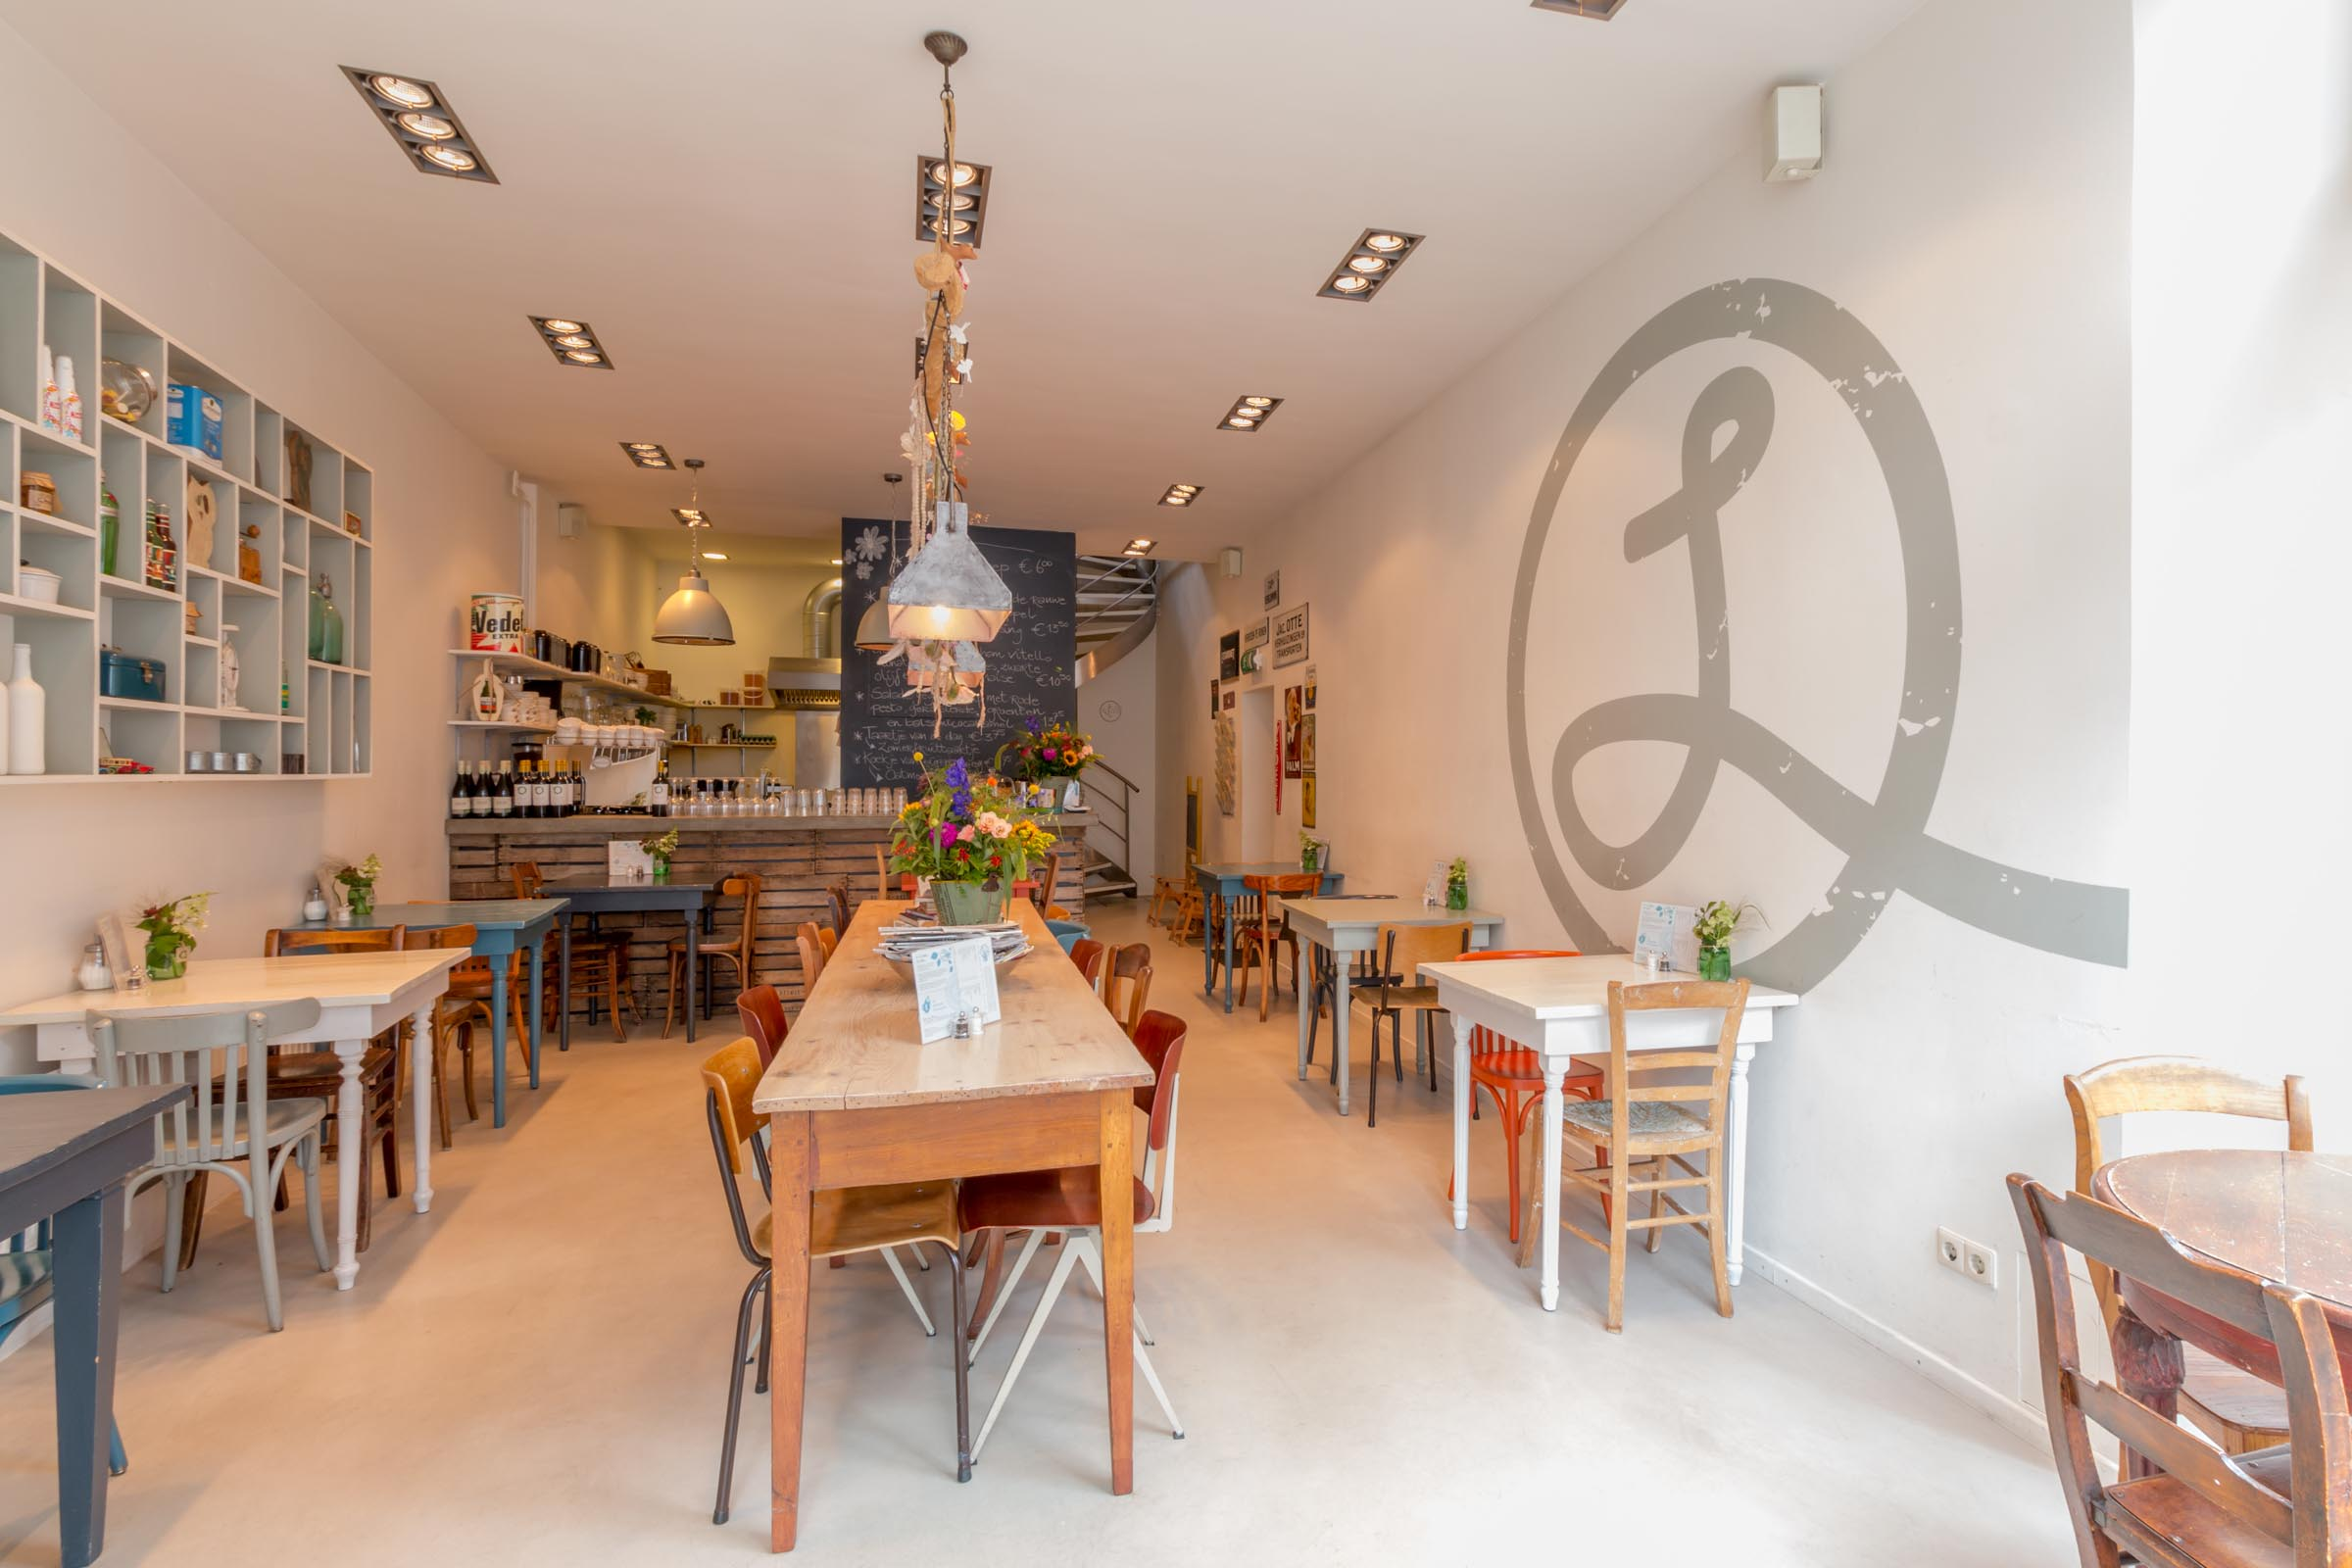 image from Lunchcafe Lente